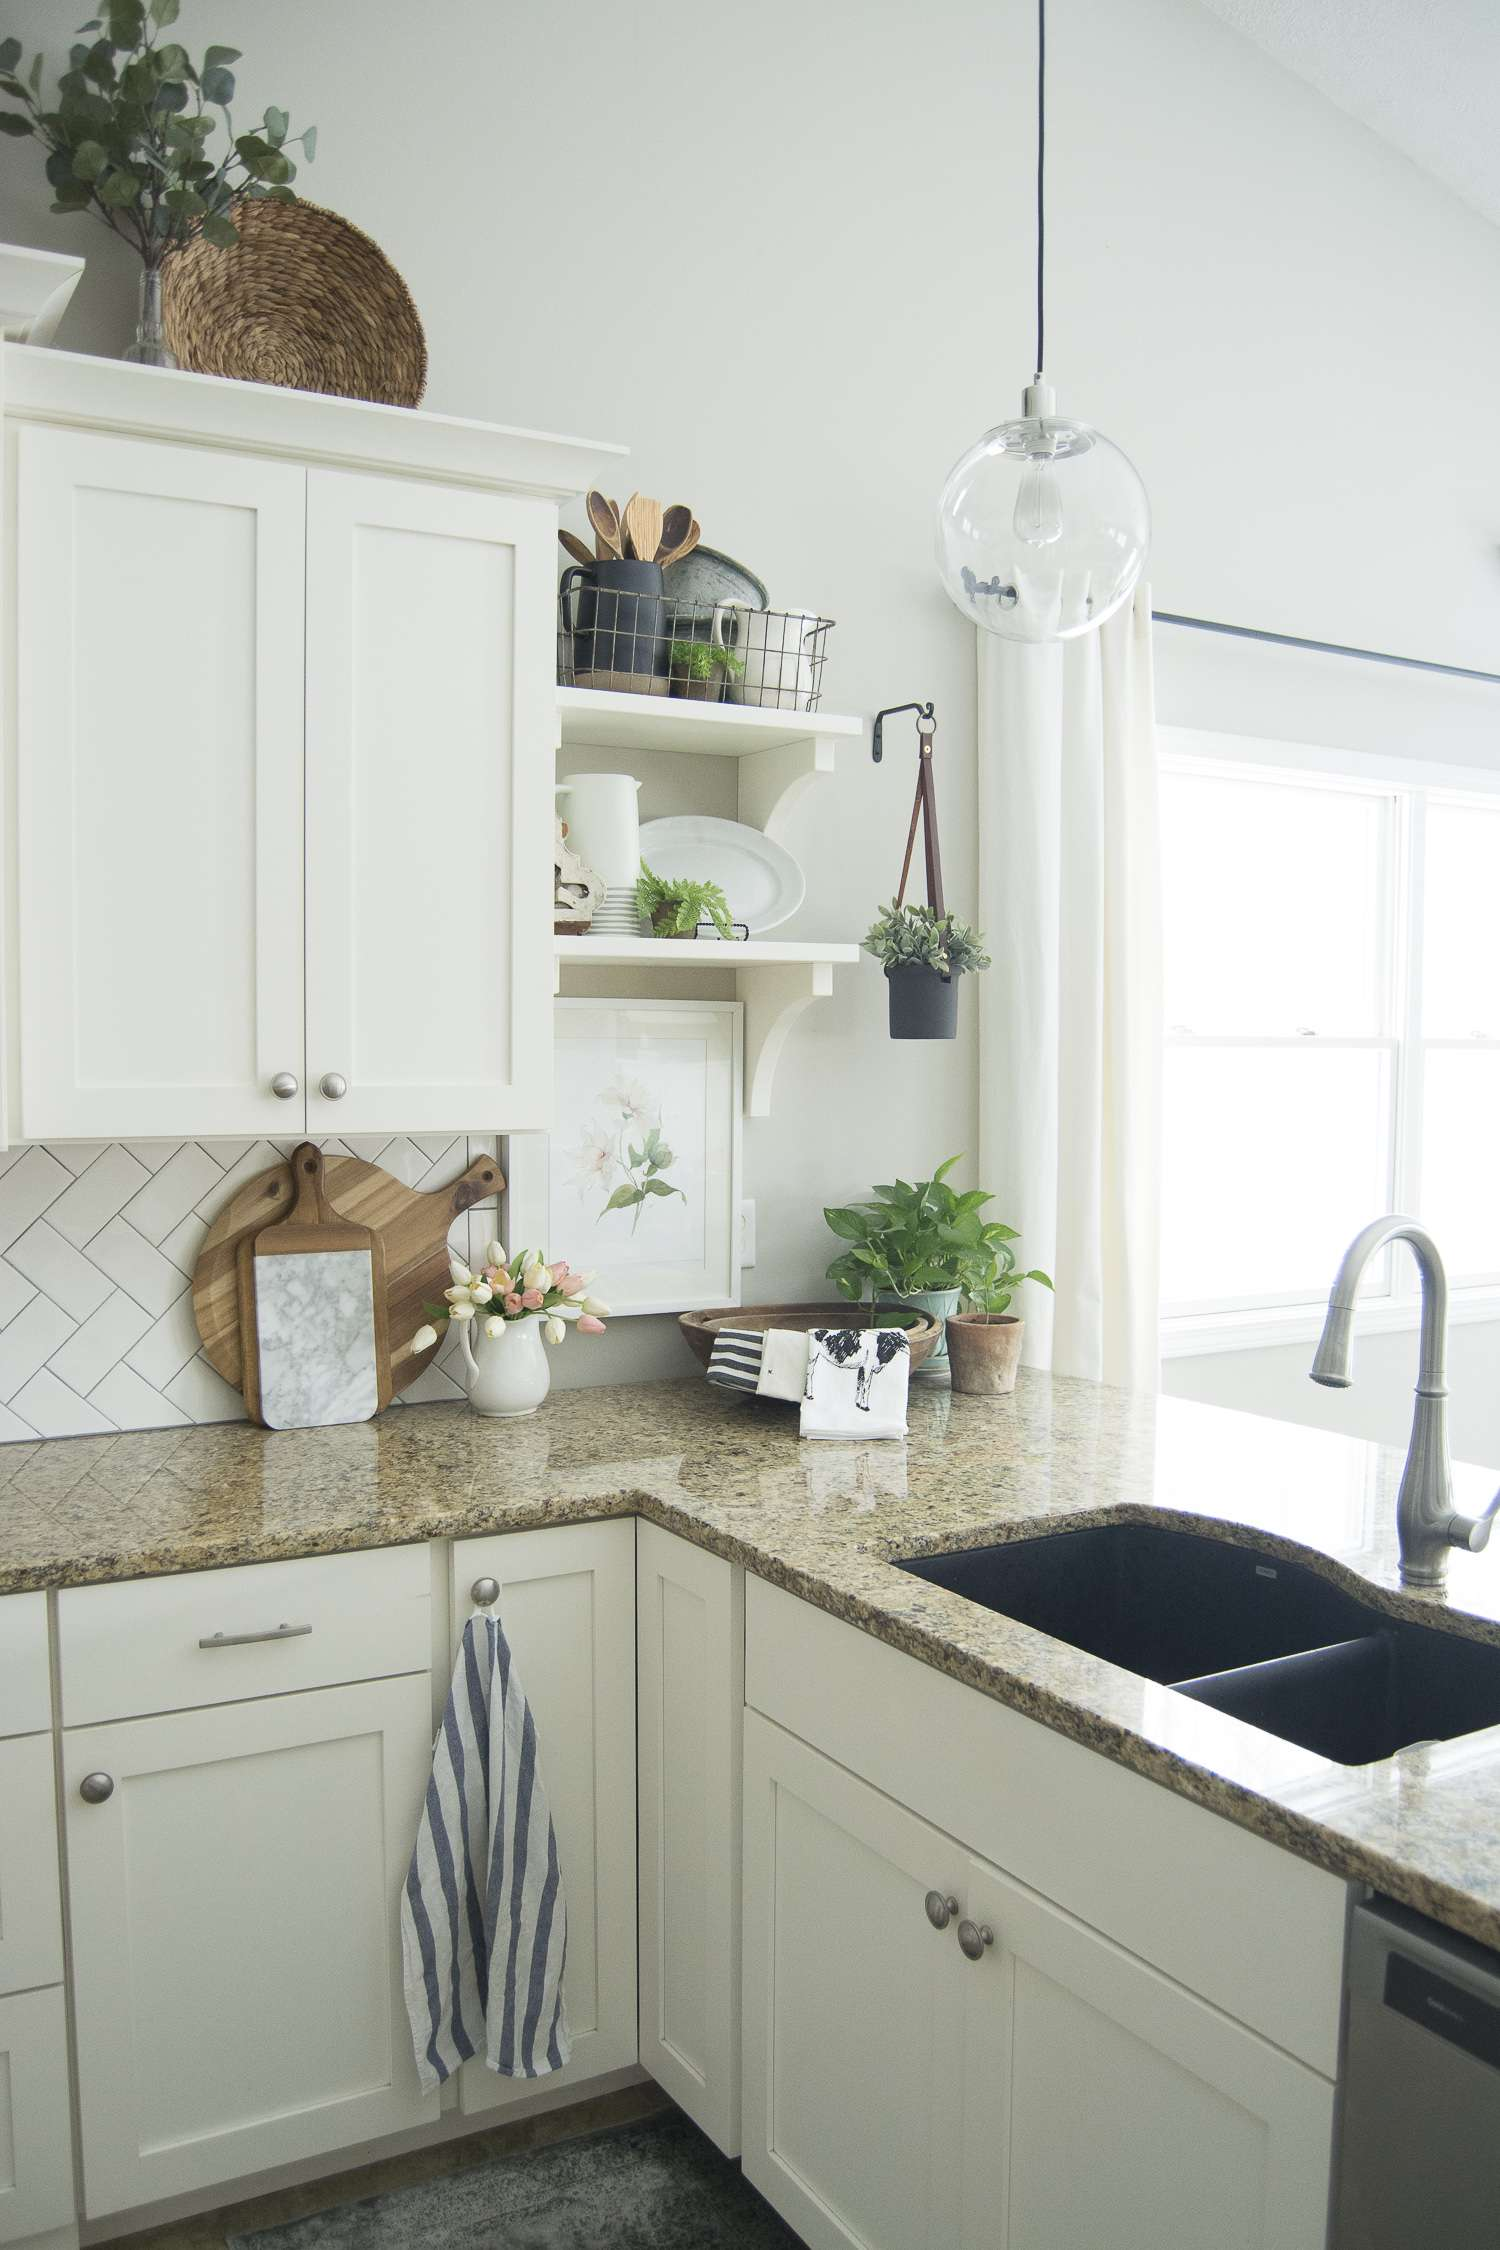 Spring Kitchen Decor | Easy Ways to Beautify Your Kitchen ...